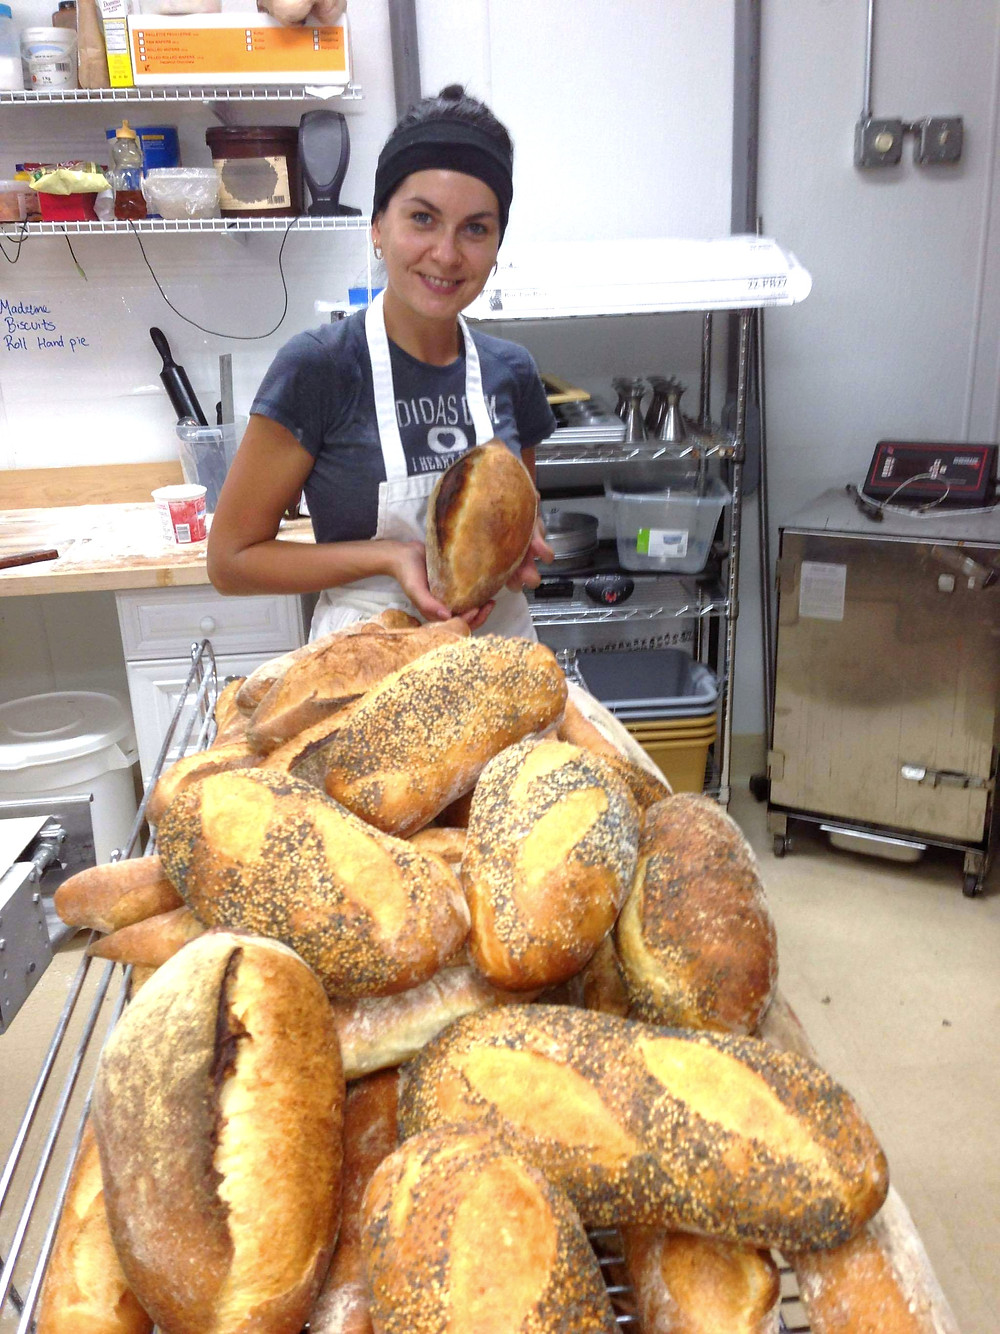 Woman holding a small loaf of bread behind a large pile of bread